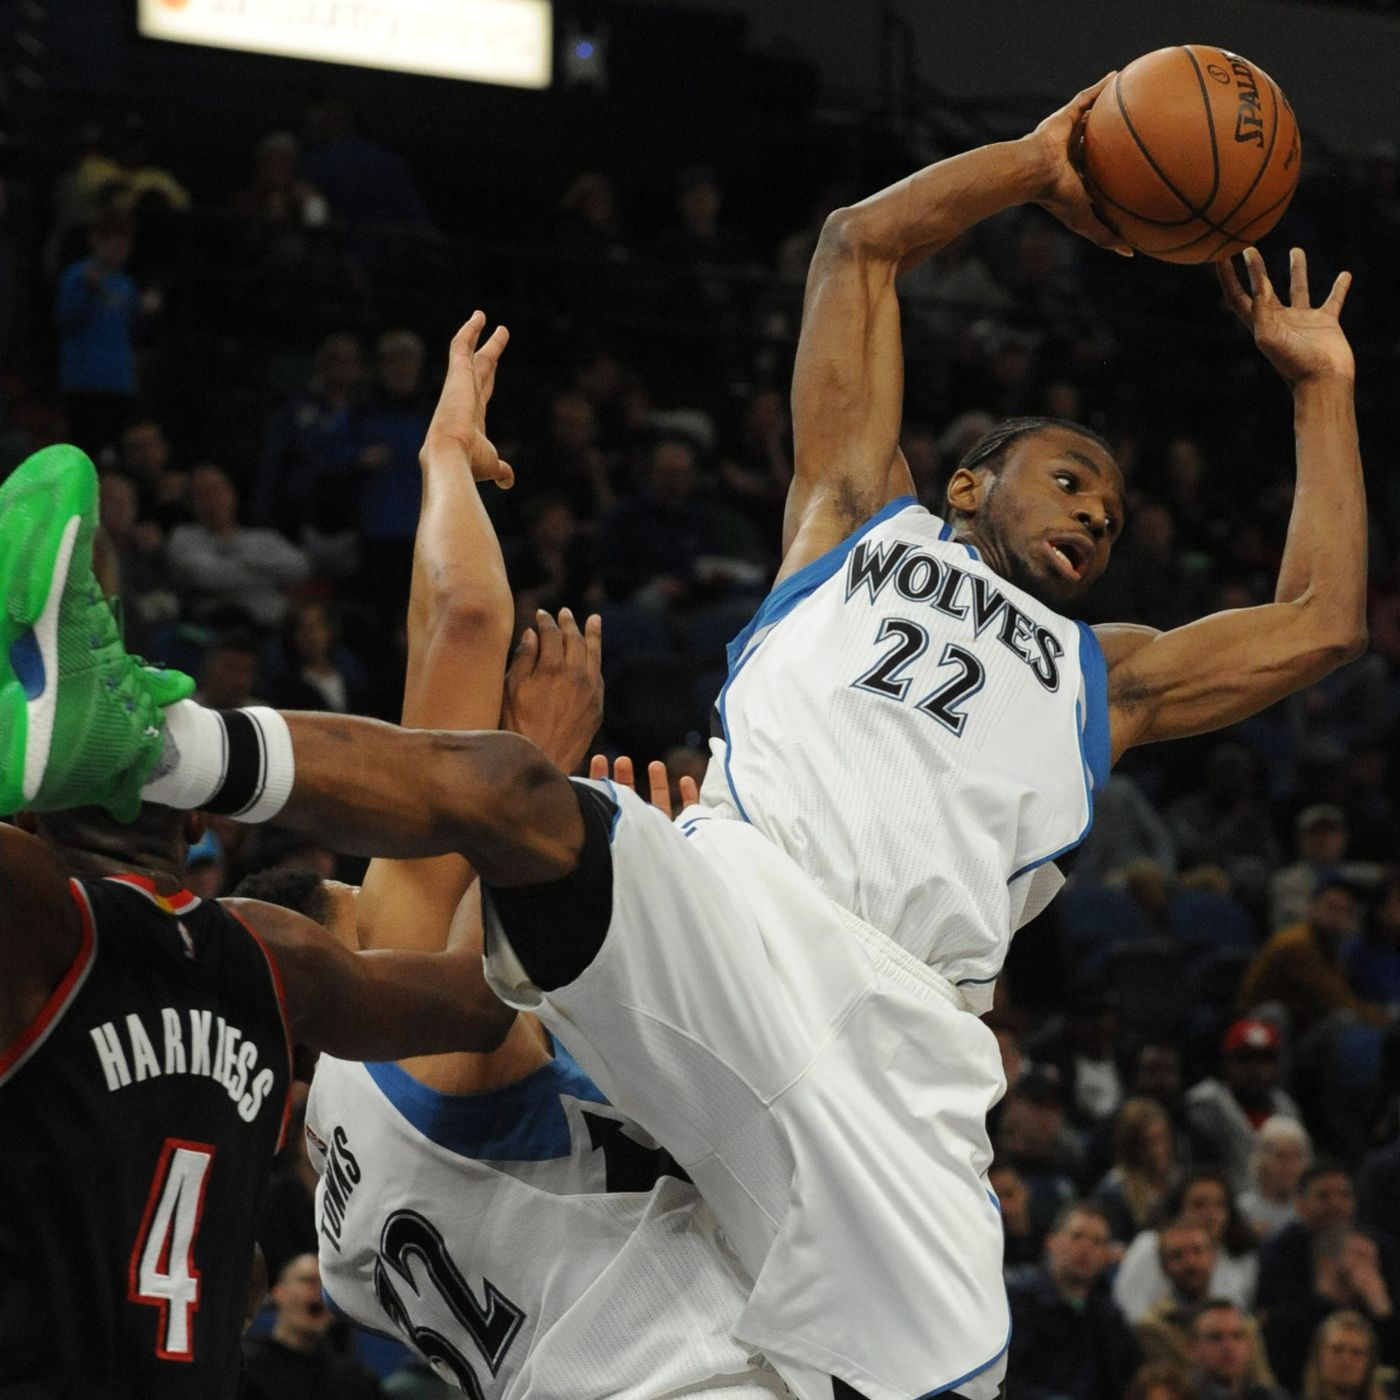 Dettatura Continua realizzabile  Why Adidas is hesitant to give Andrew Wiggins a signature shoe -  SBNation.com